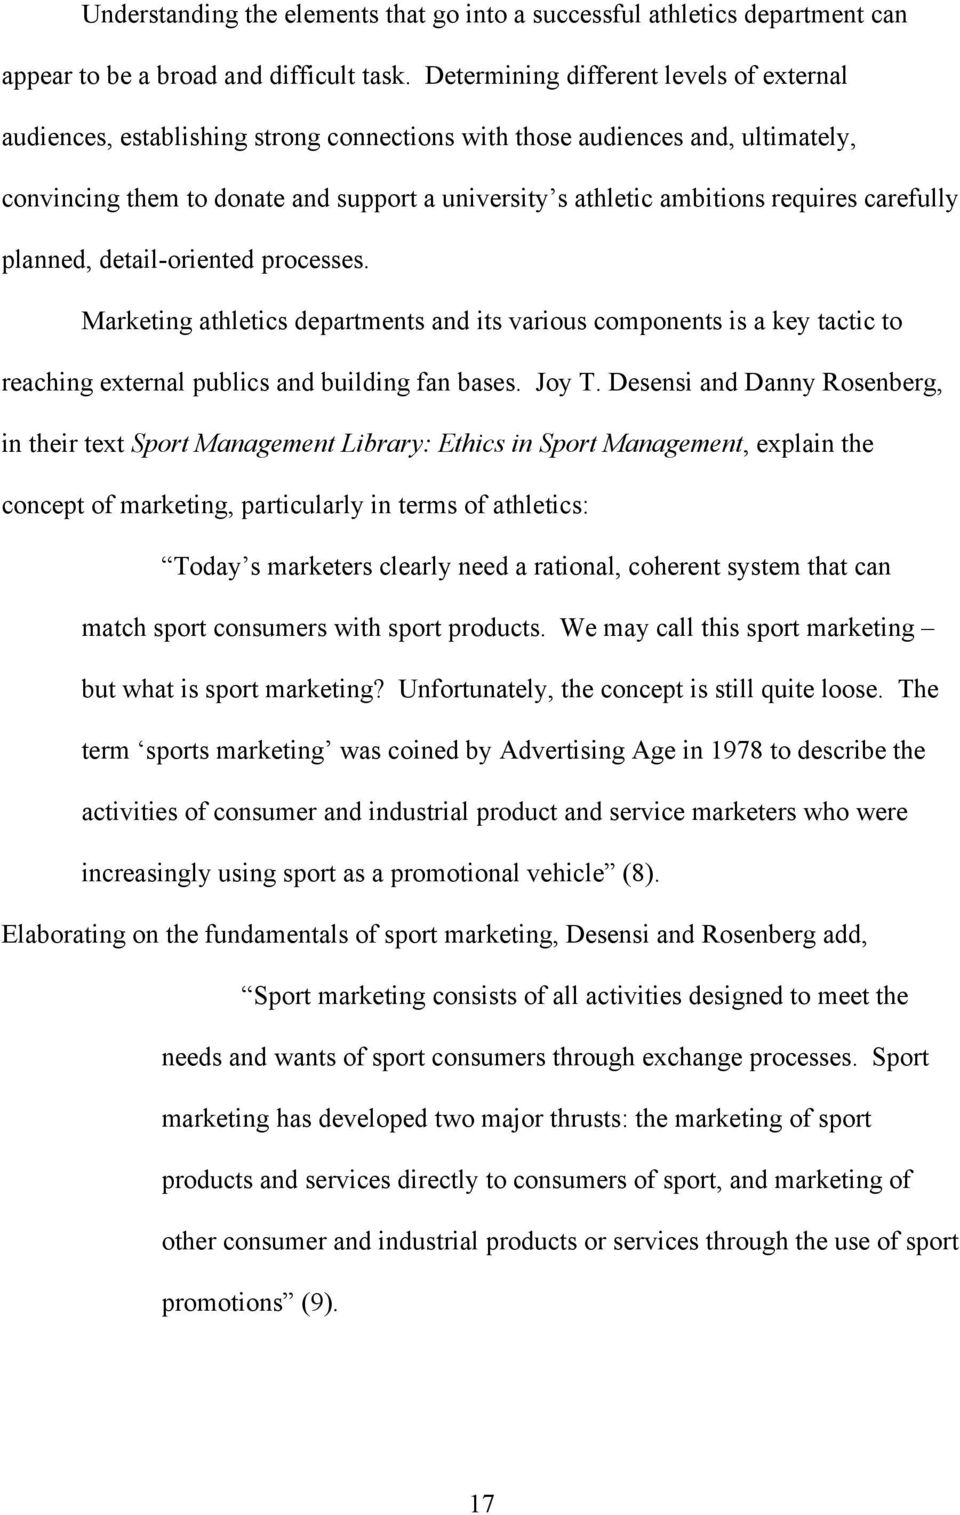 requires carefully planned, detail-oriented processes. Marketing athletics departments and its various components is a key tactic to reaching external publics and building fan bases. Joy T.